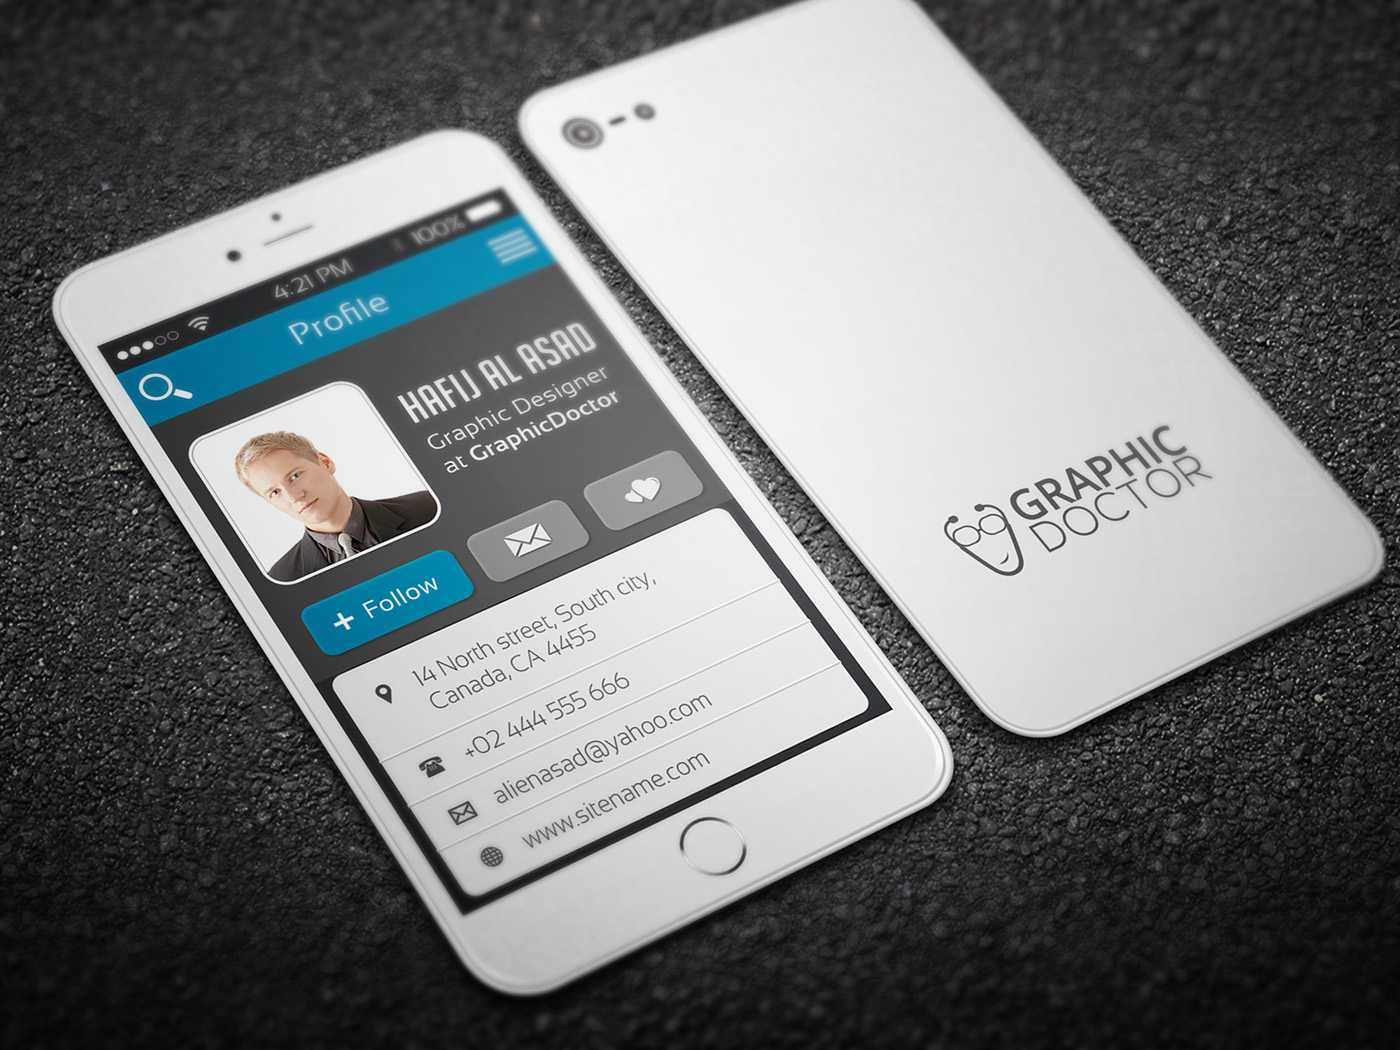 Iphone Business Card Template On Behance Inside Iphone Business Card Template